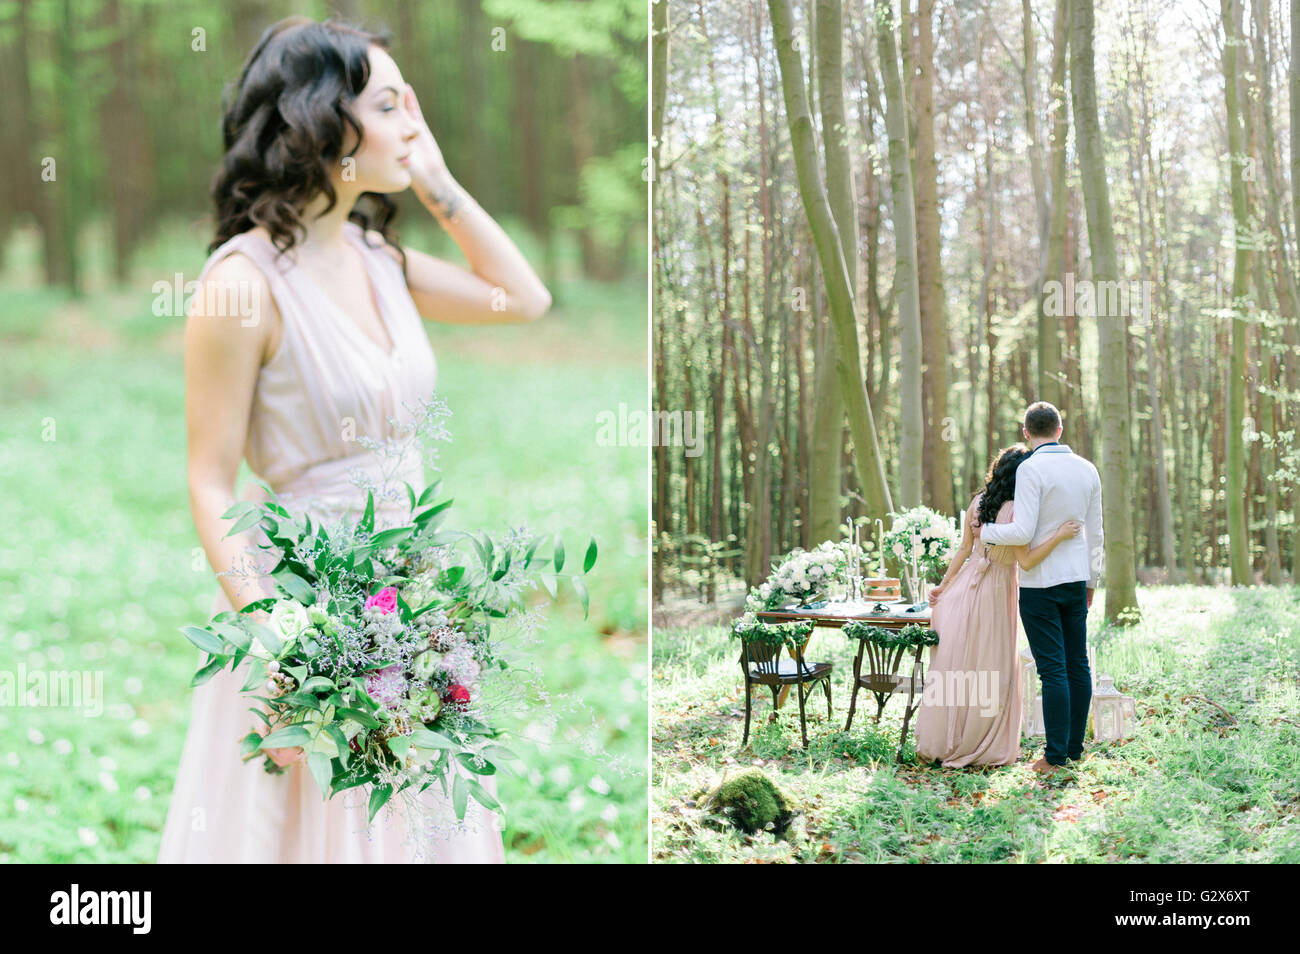 Beautiful bride and groom in spring forest. Decorated rustic wedding. Vintage decor wildflowers bouquet table setting candles. Collage photo & Beautiful bride and groom in spring forest. Decorated rustic wedding ...